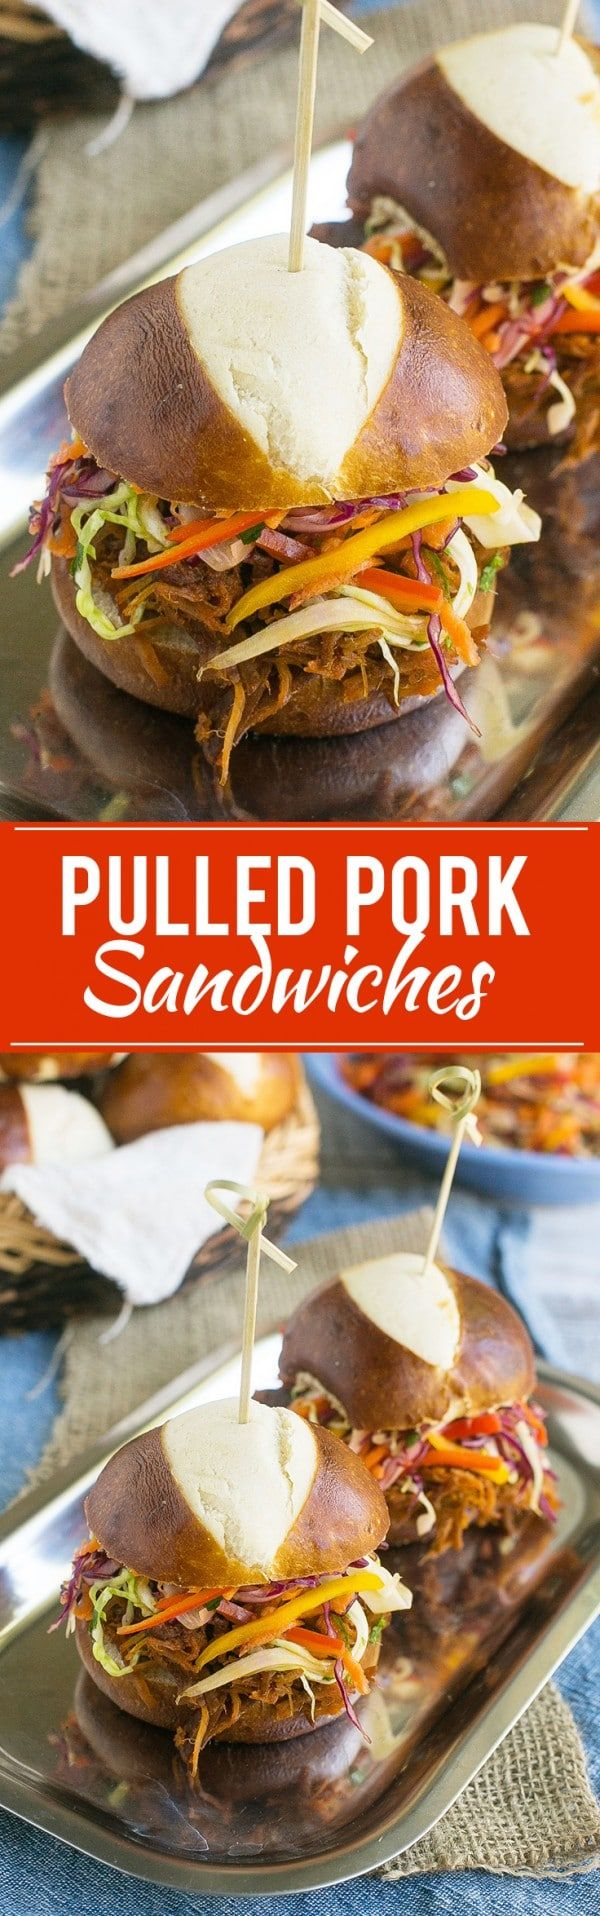 These easy pulled pork sandwiches are topped with a colorful rainbow slaw - pure comfort food that can even be made in advance!